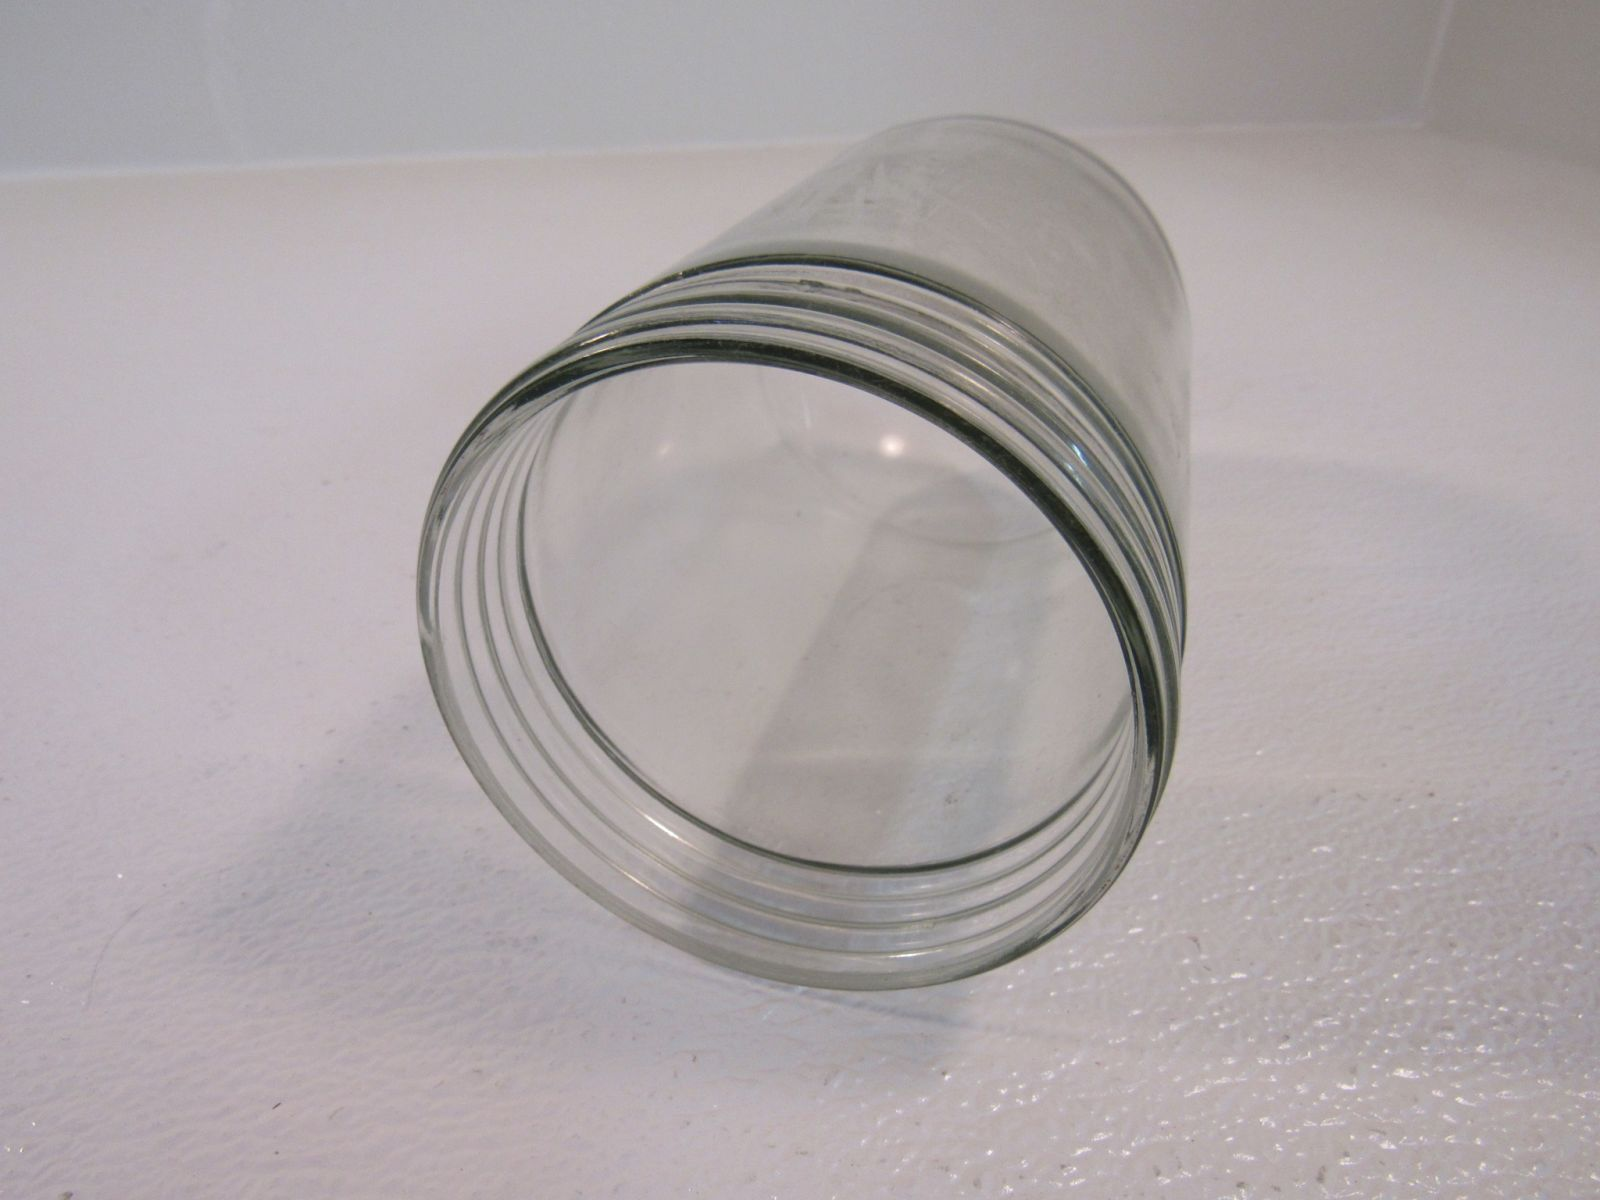 Classic Vintage Light Fixture Lense Cover Jelly Jar Clear Glass